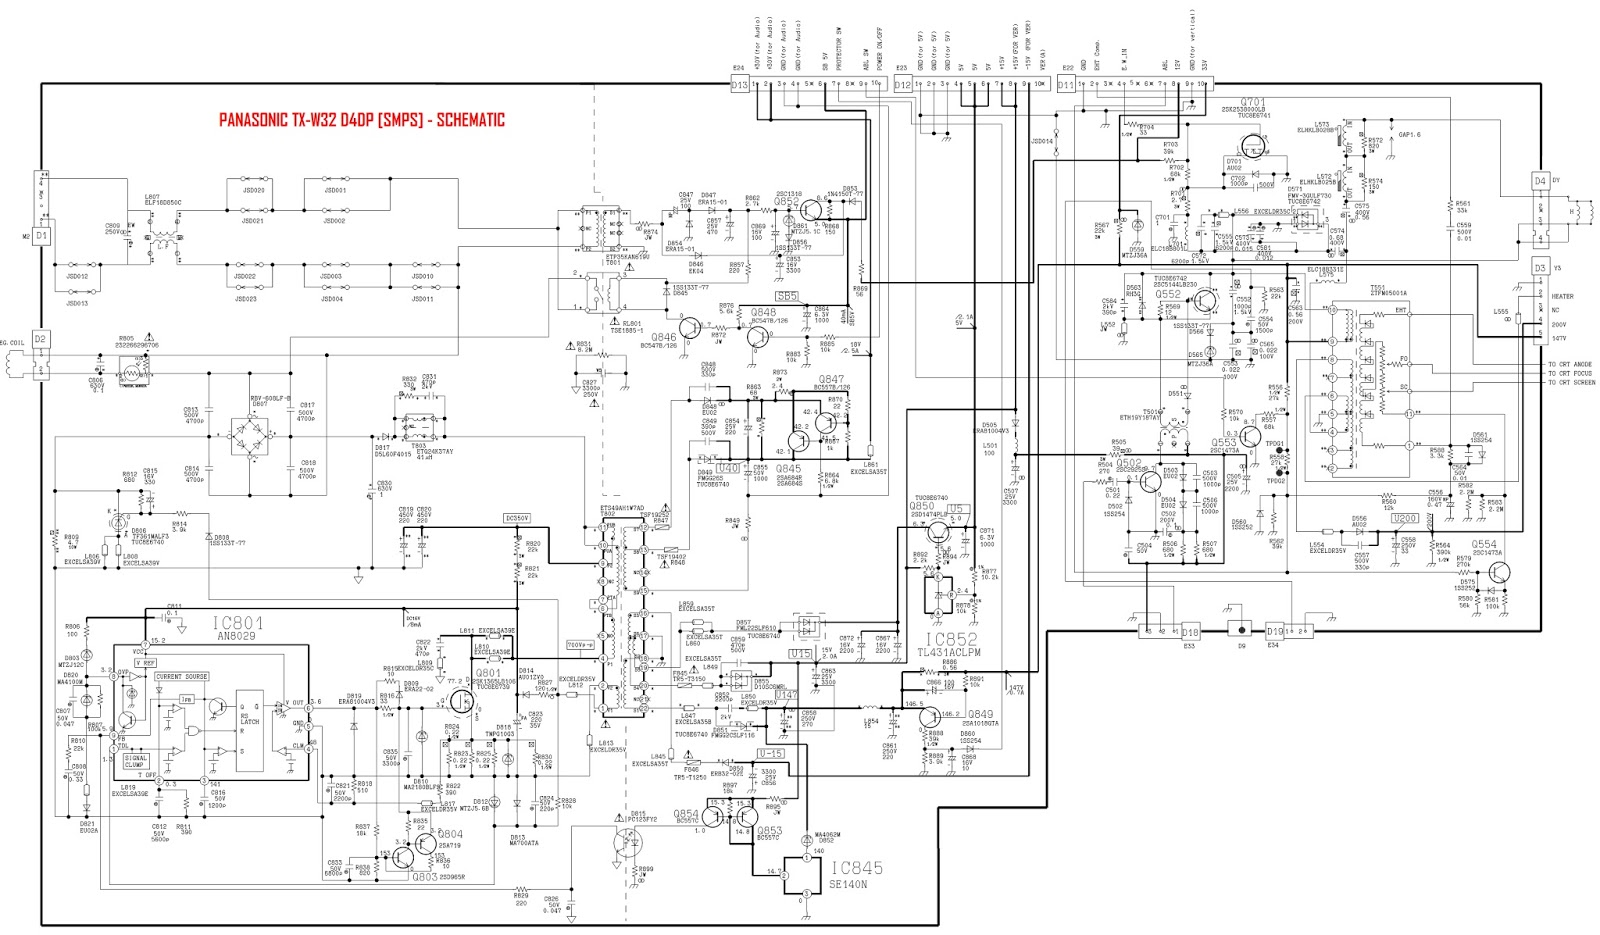 panasonic tv wiring diagram today wiring diagram rh 12 uioas fintecforumdach de